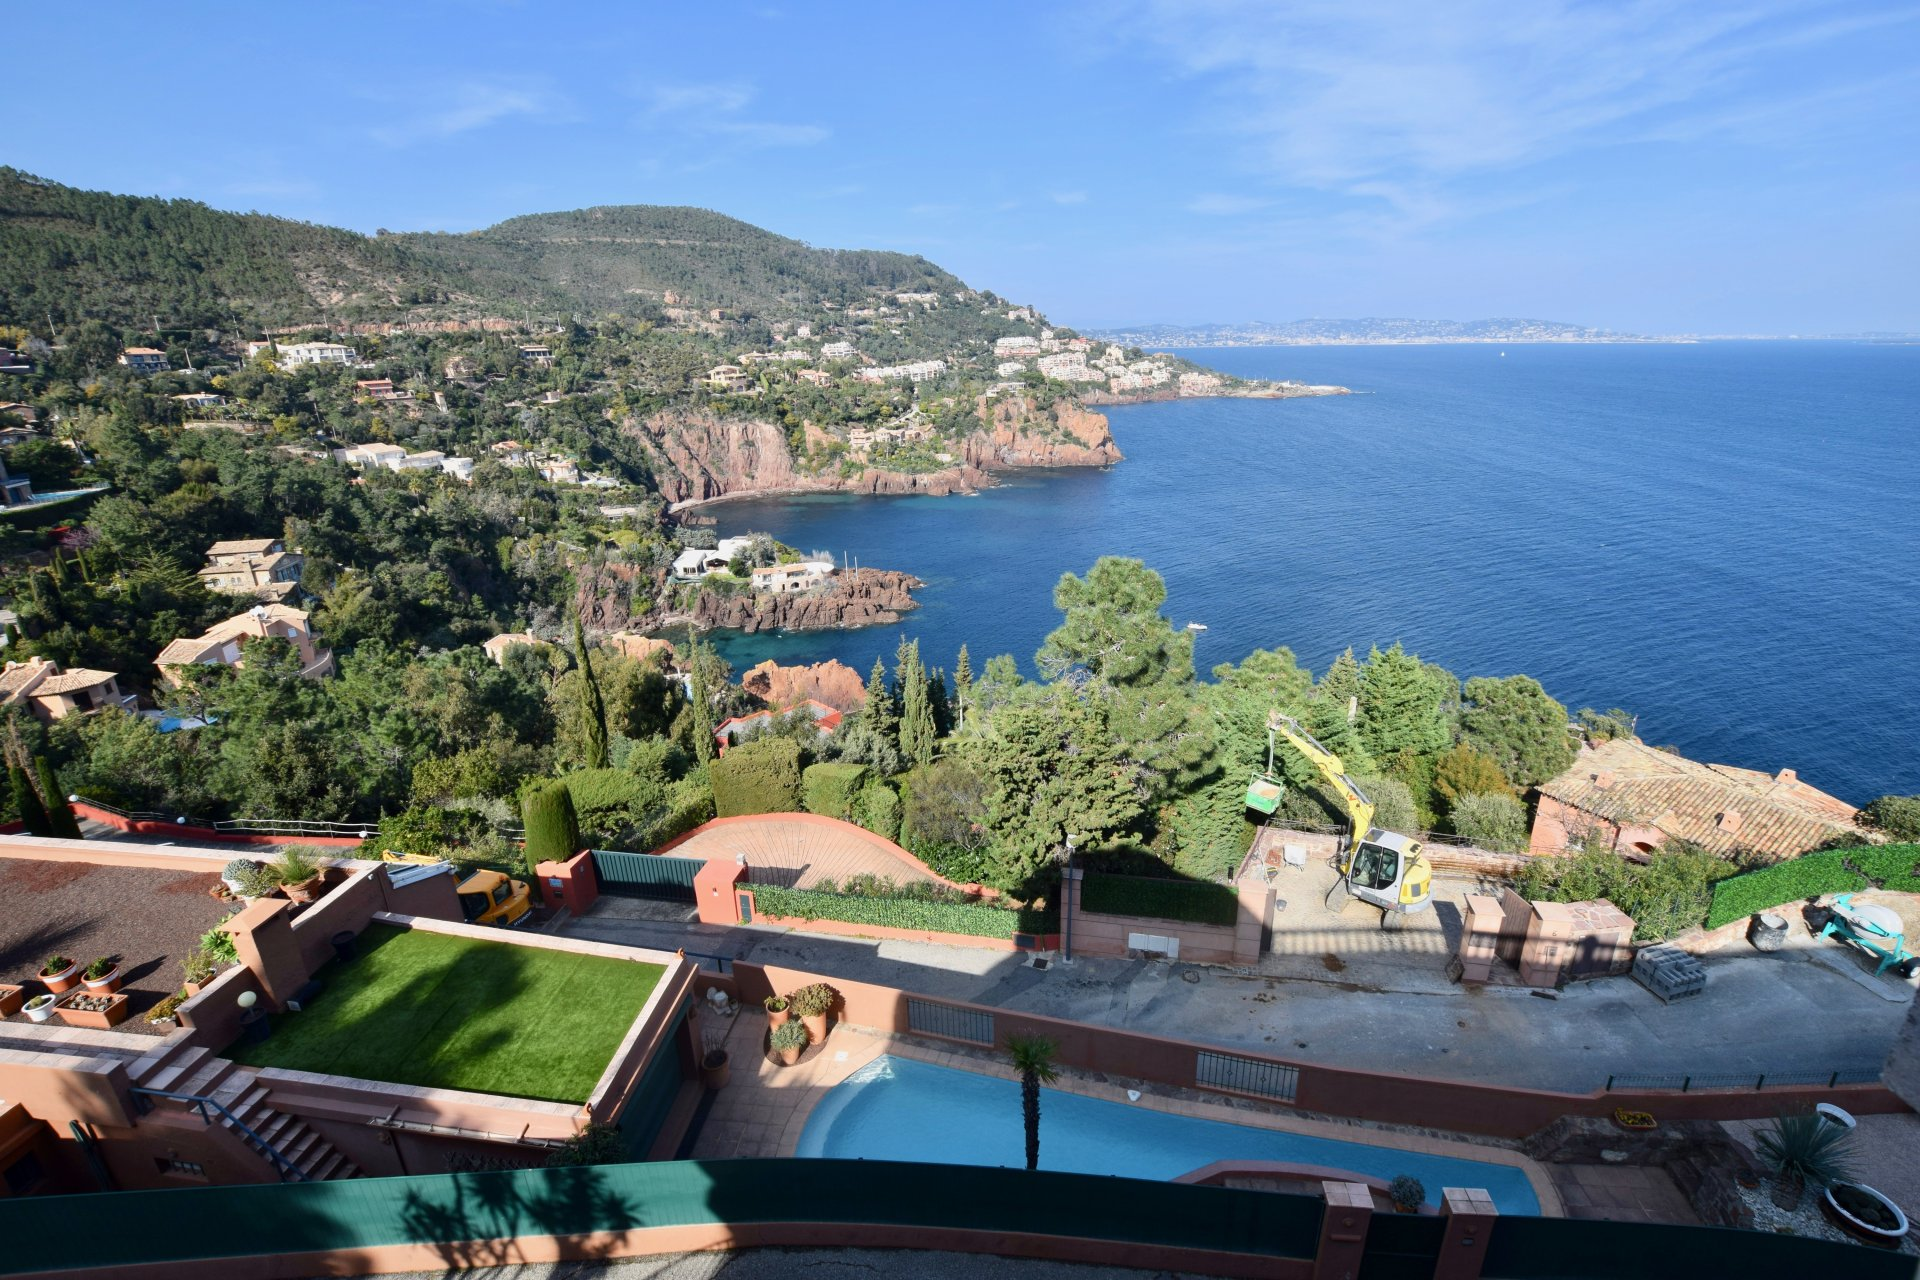 Magnificent 300 m² duplex with panoramic sea view 9 rooms 6 bedrooms